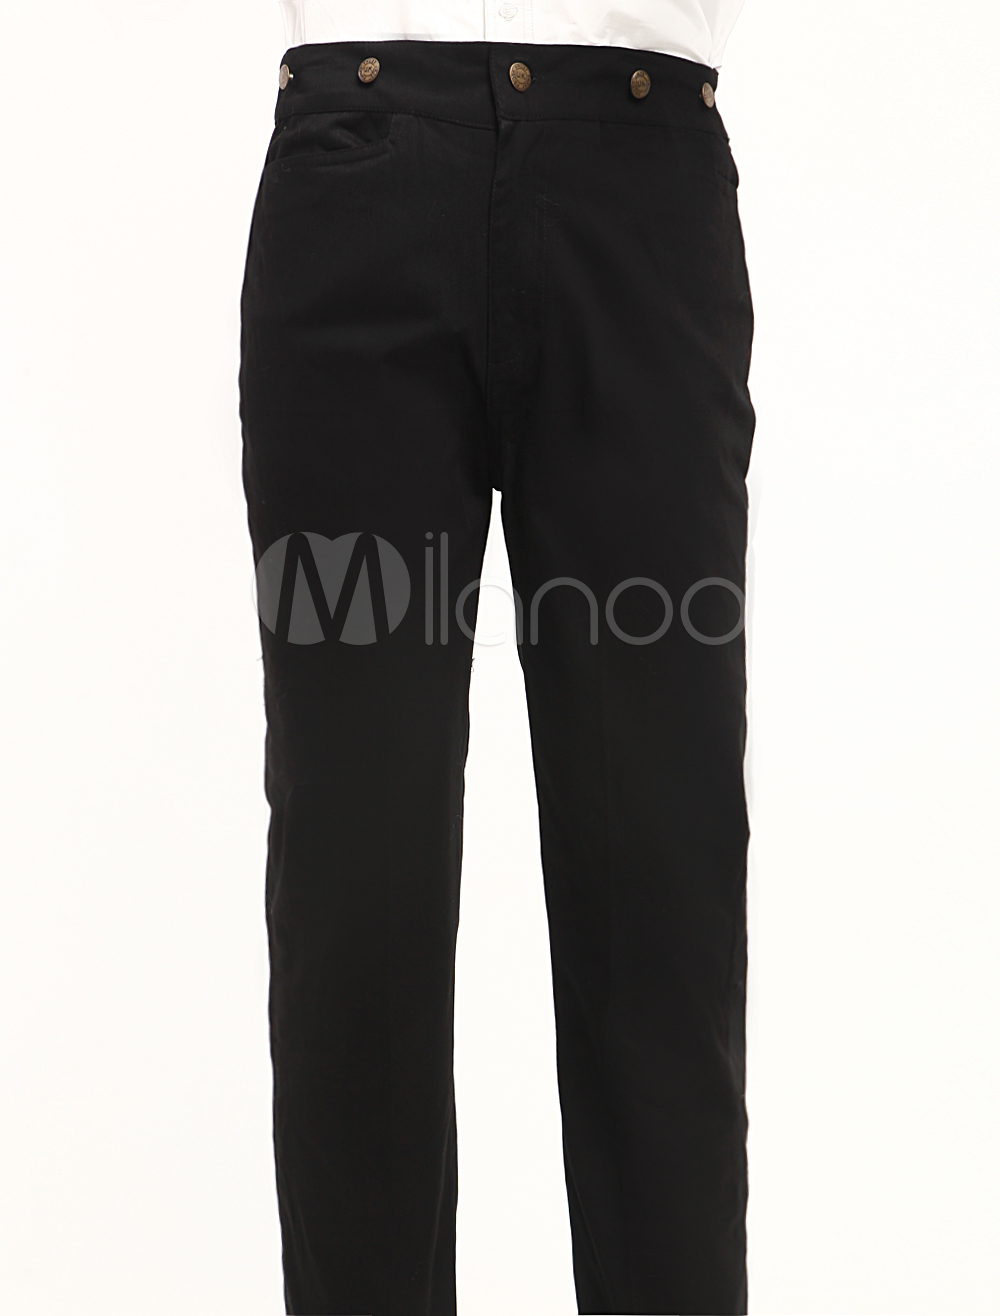 Cool Black Cotton Mens Steampunk Trousers $49.99 AT vintagedancer.com